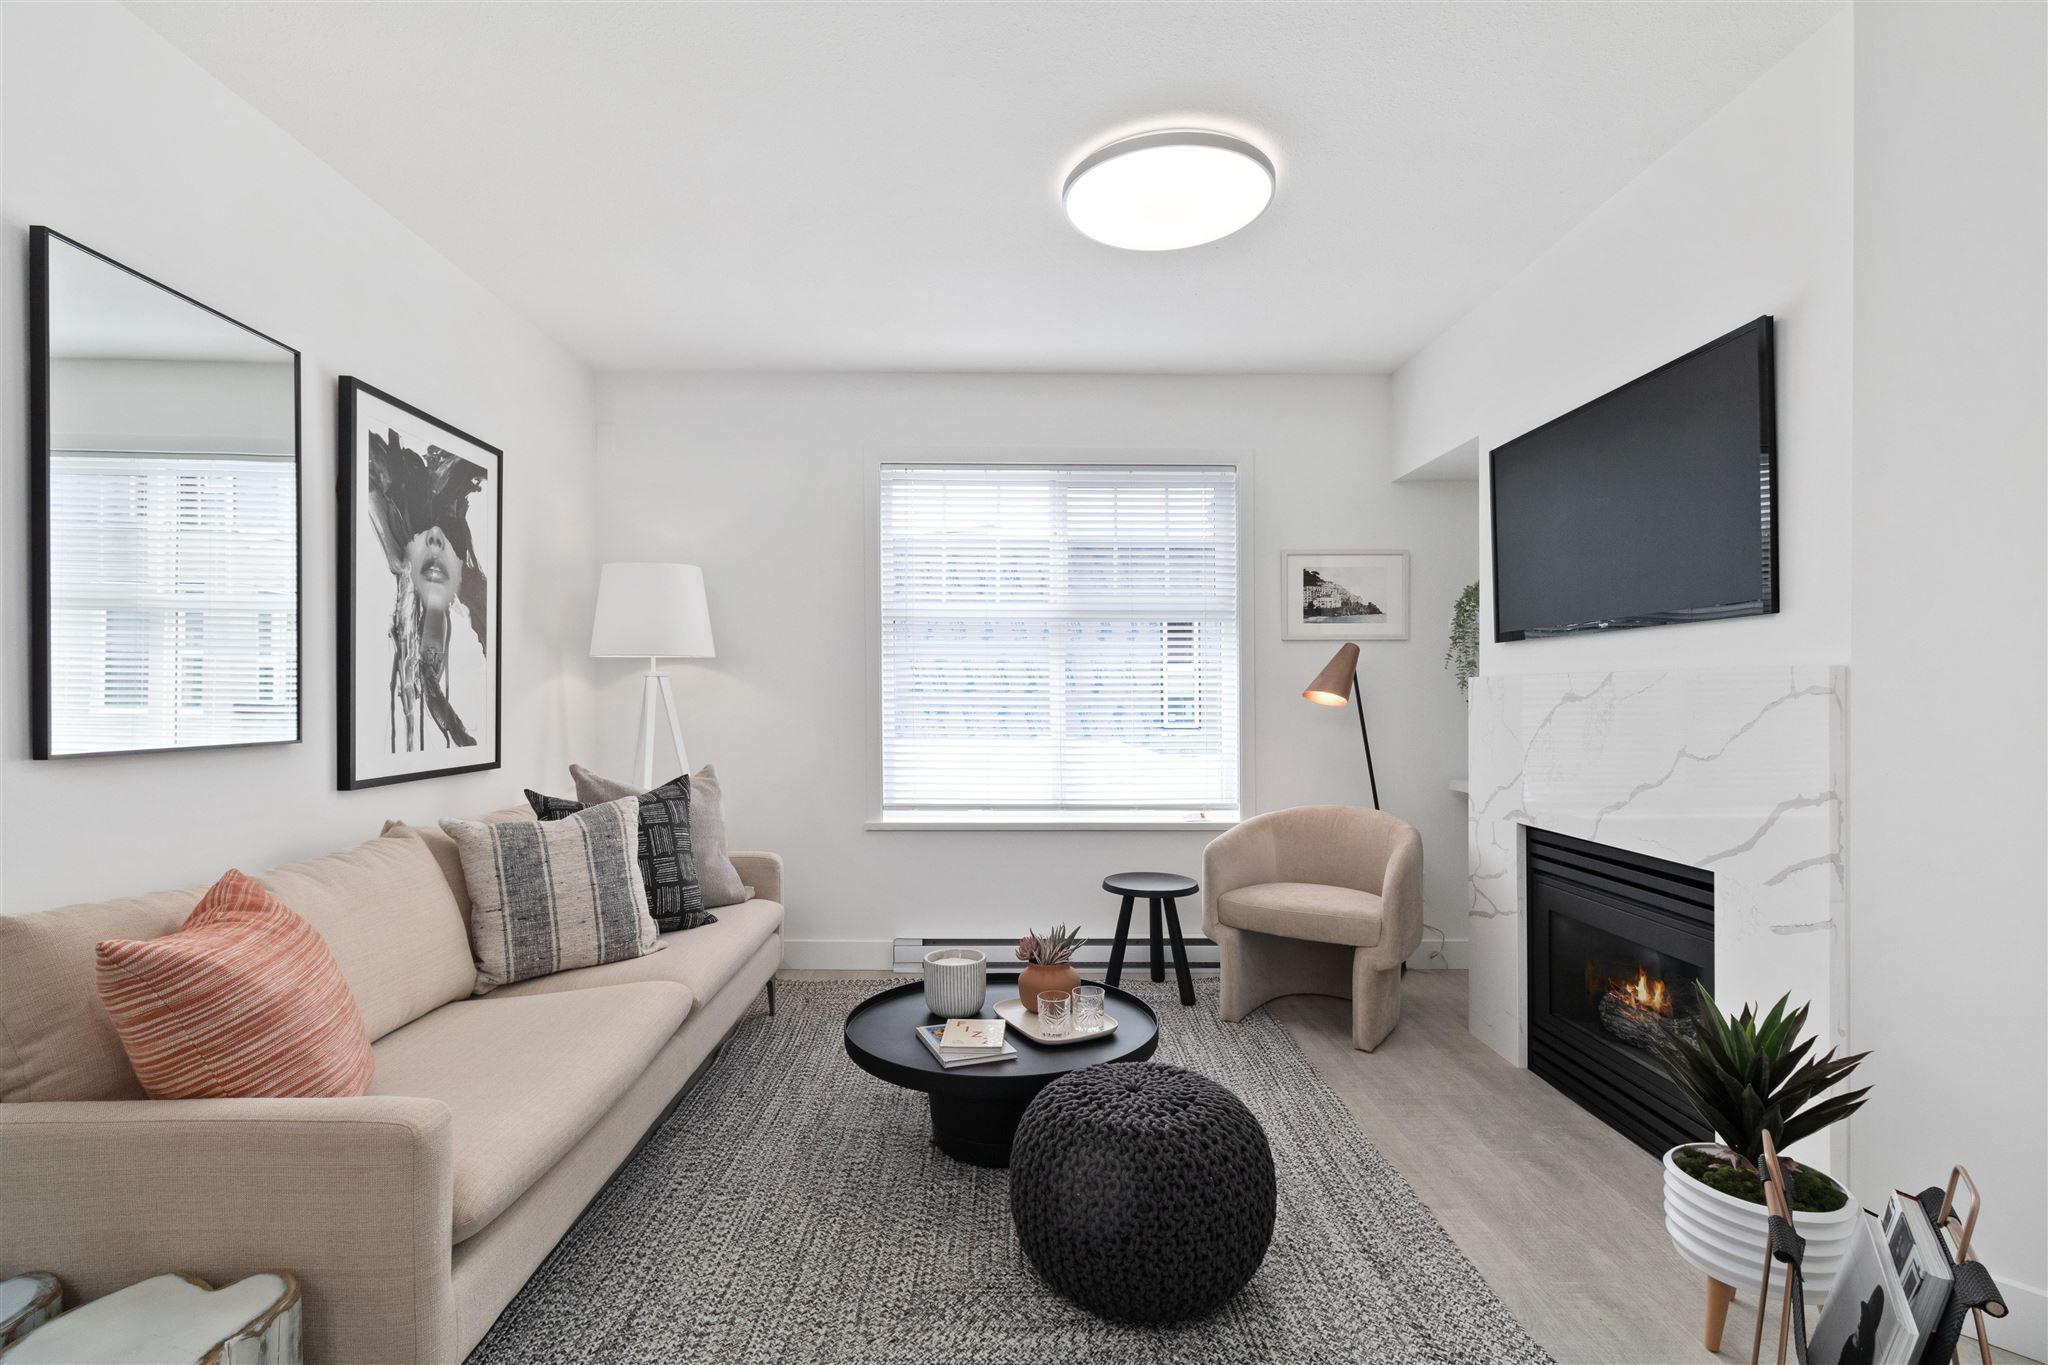 """Main Photo: PH 9 1011 W KING EDWARD Avenue in Vancouver: Cambie Condo for sale in """"Lord Shaughnessy"""" (Vancouver West)  : MLS®# R2608386"""